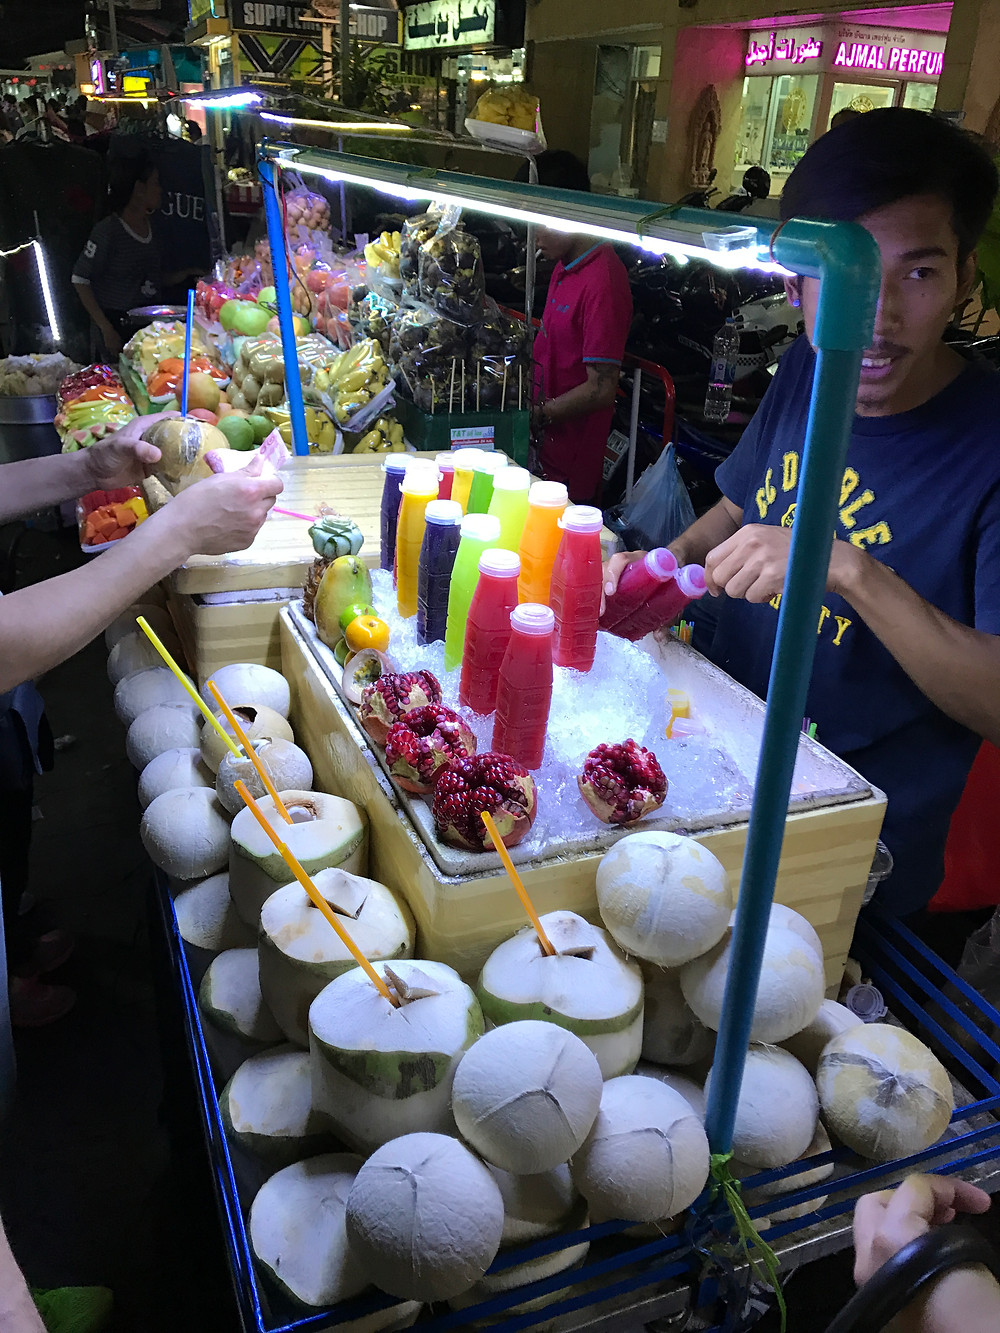 A Street Vendor in Nana District, Bangkok sell freshly squeezed and colorful juices of fruits, coconuts and even more fresh fruit. The Streets of Bangkok is full of Street Food stands with delicious food. In this Food Guide you'll find the best Street Food locations in Bangkok.